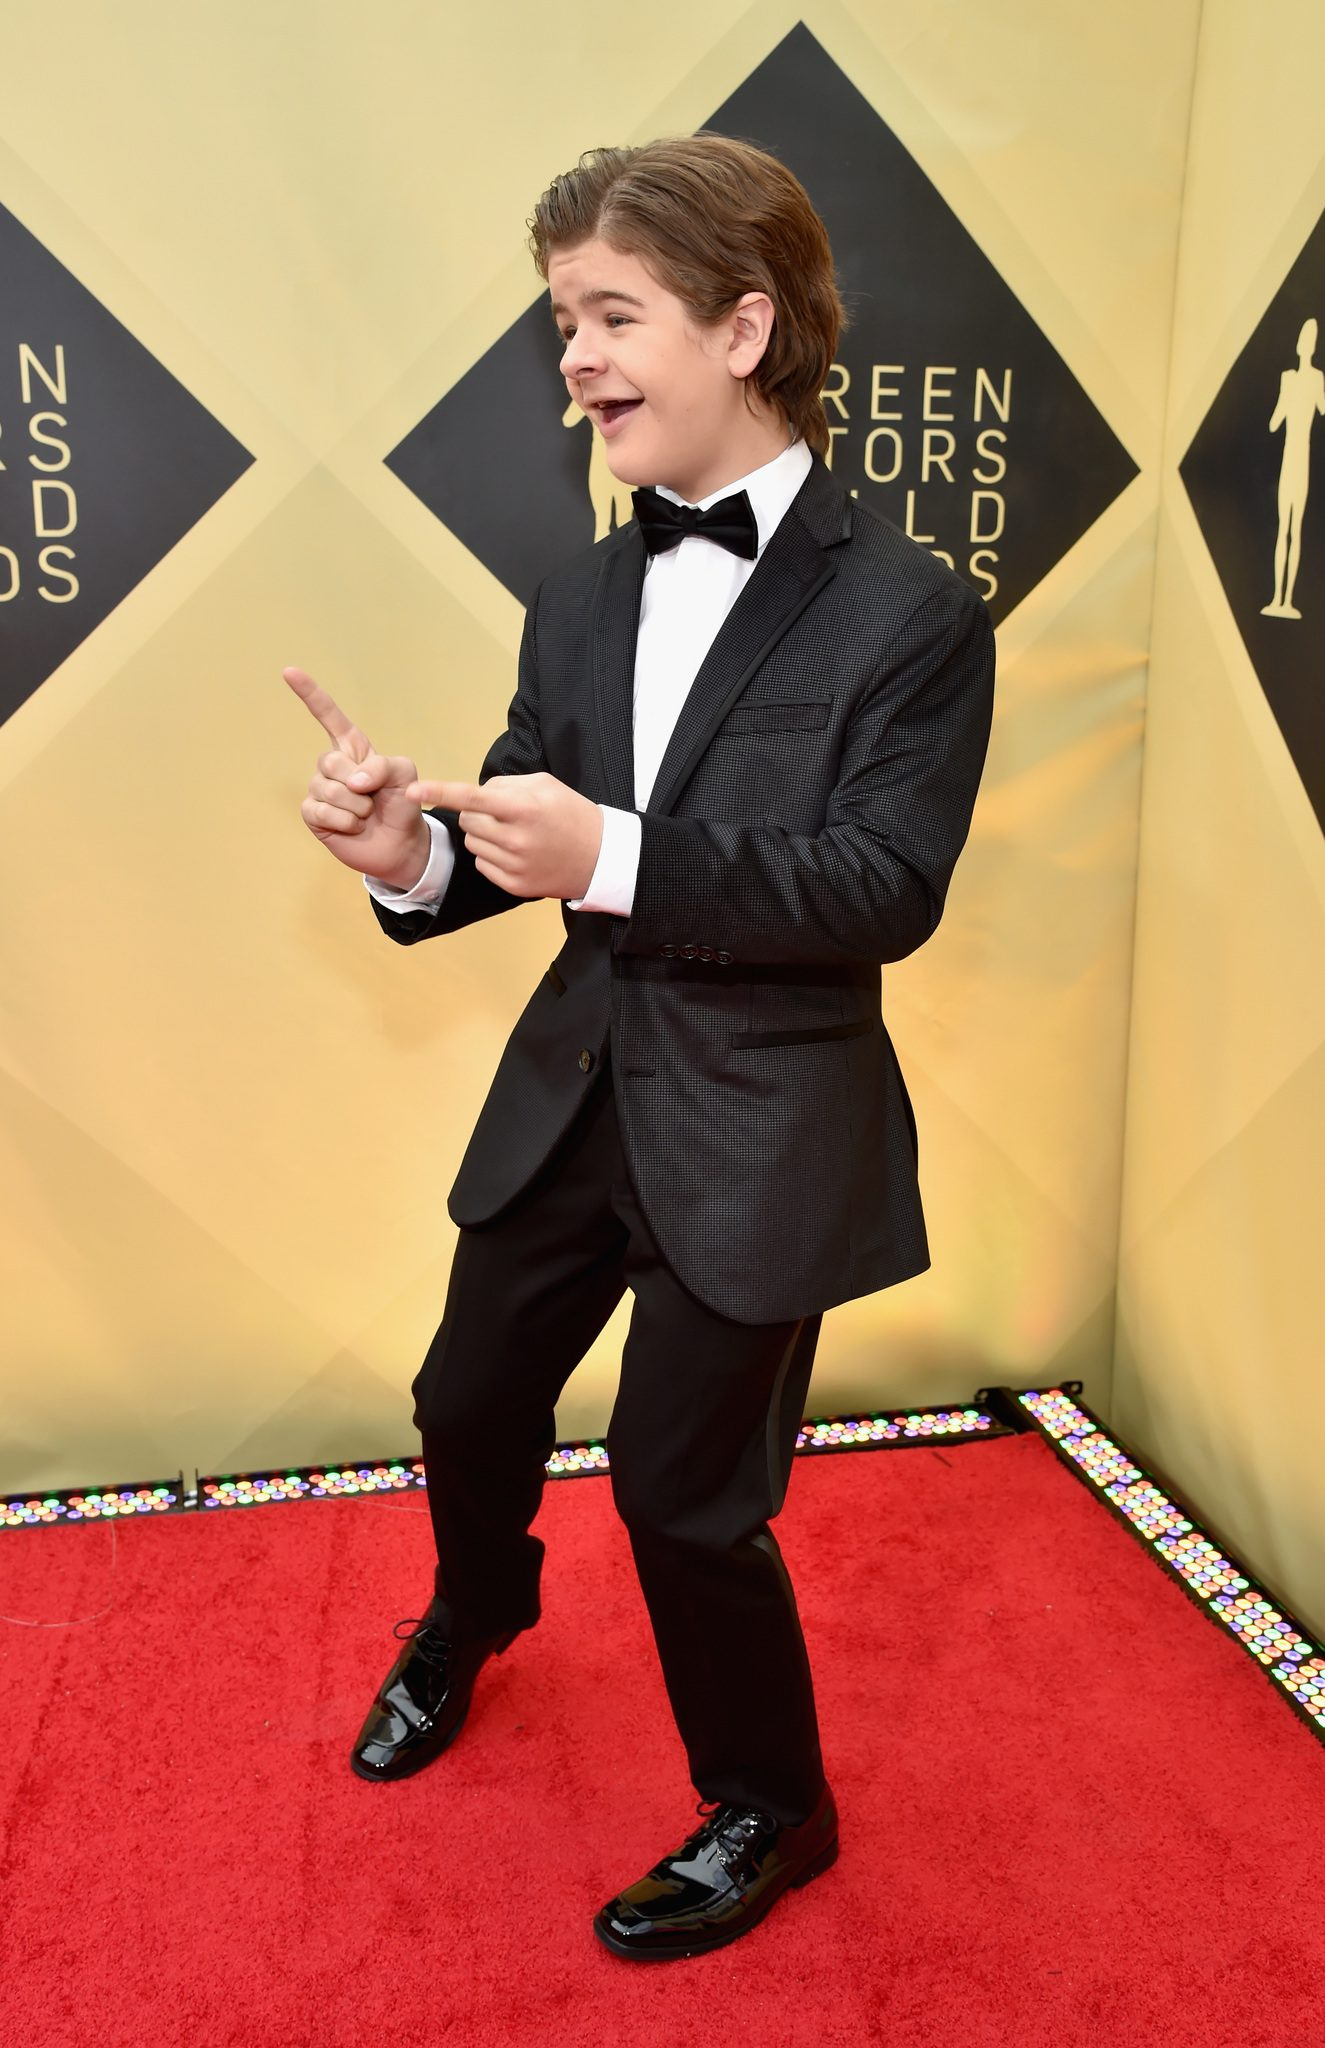 stranger 16 20 Things You Never Knew About The Stranger Things Cast In Real Life